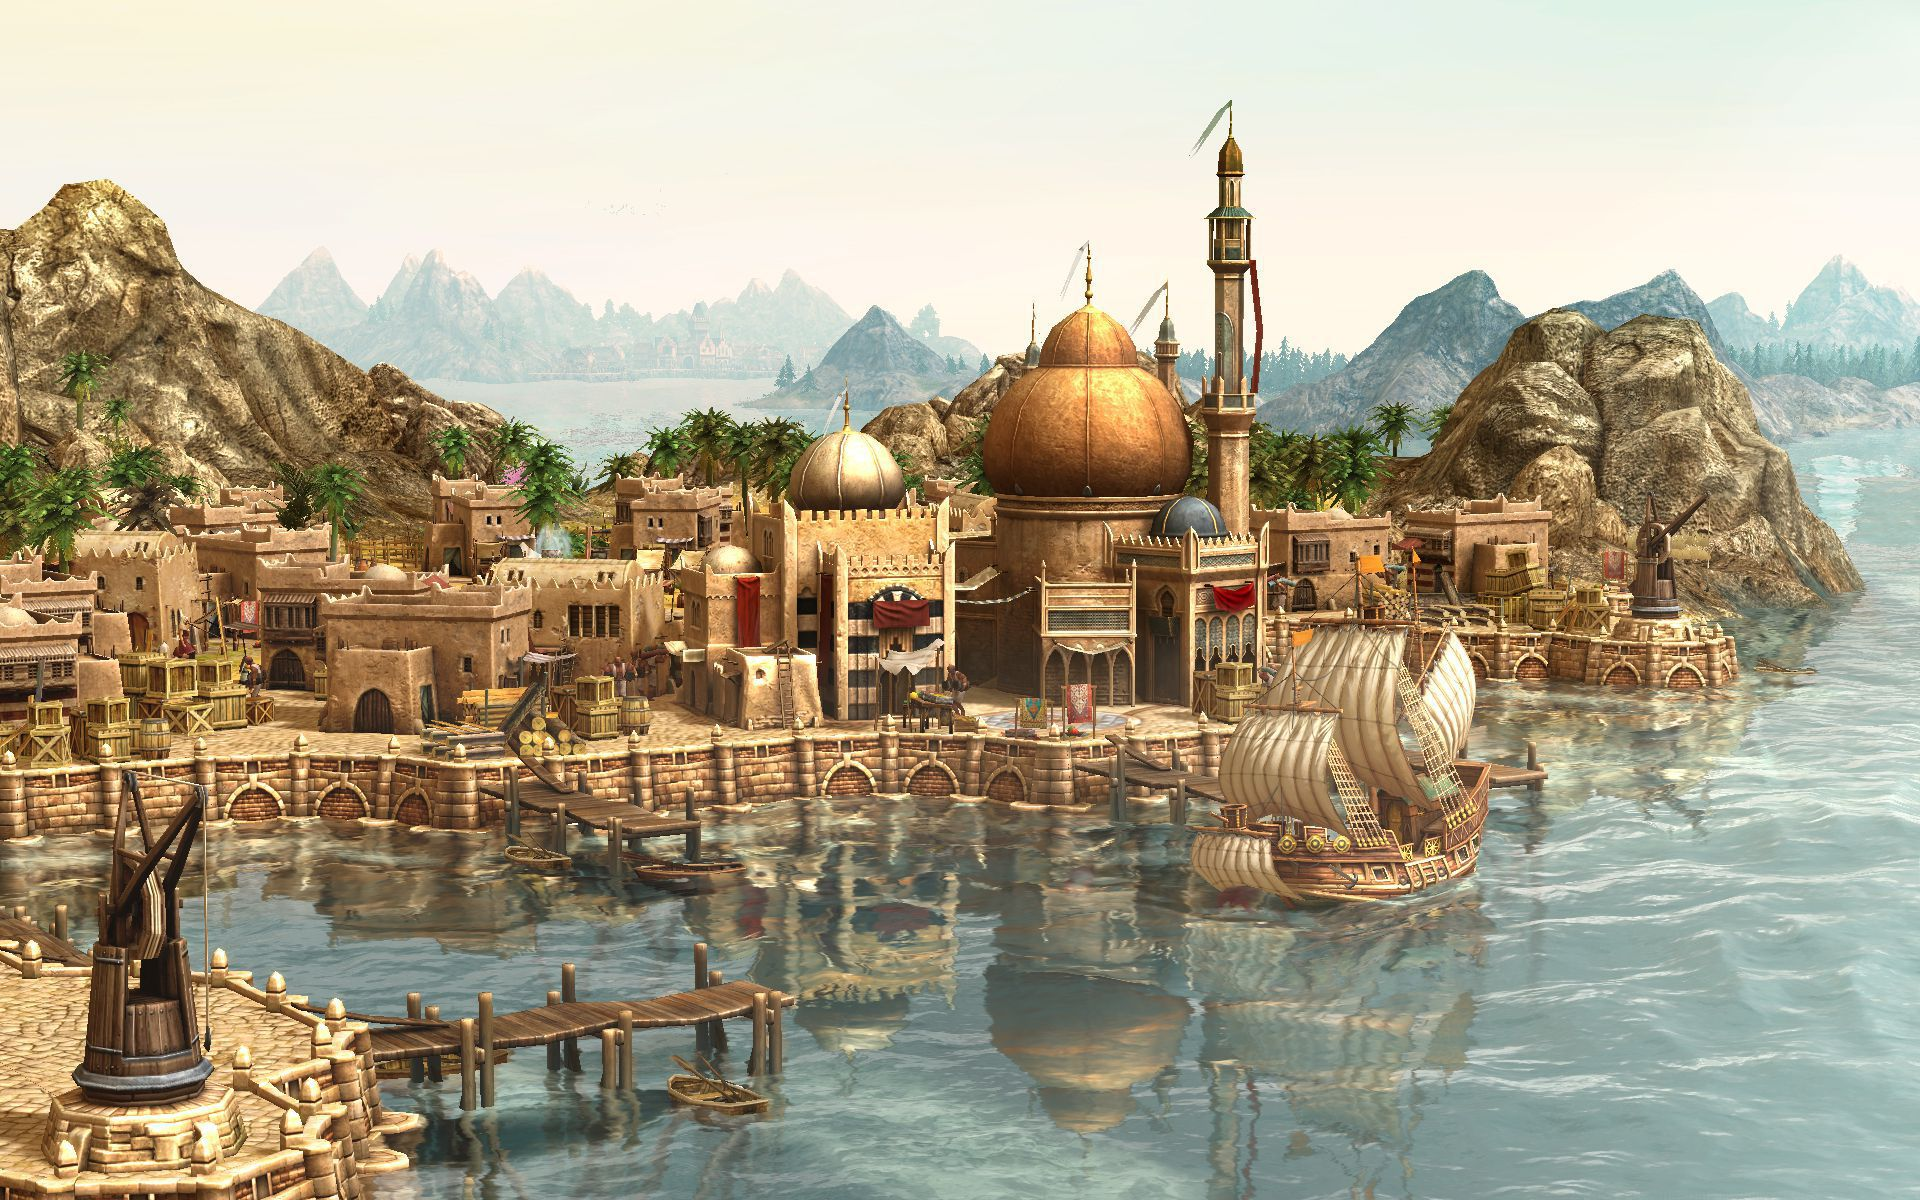 Age Of Empires Wallpaper Pack